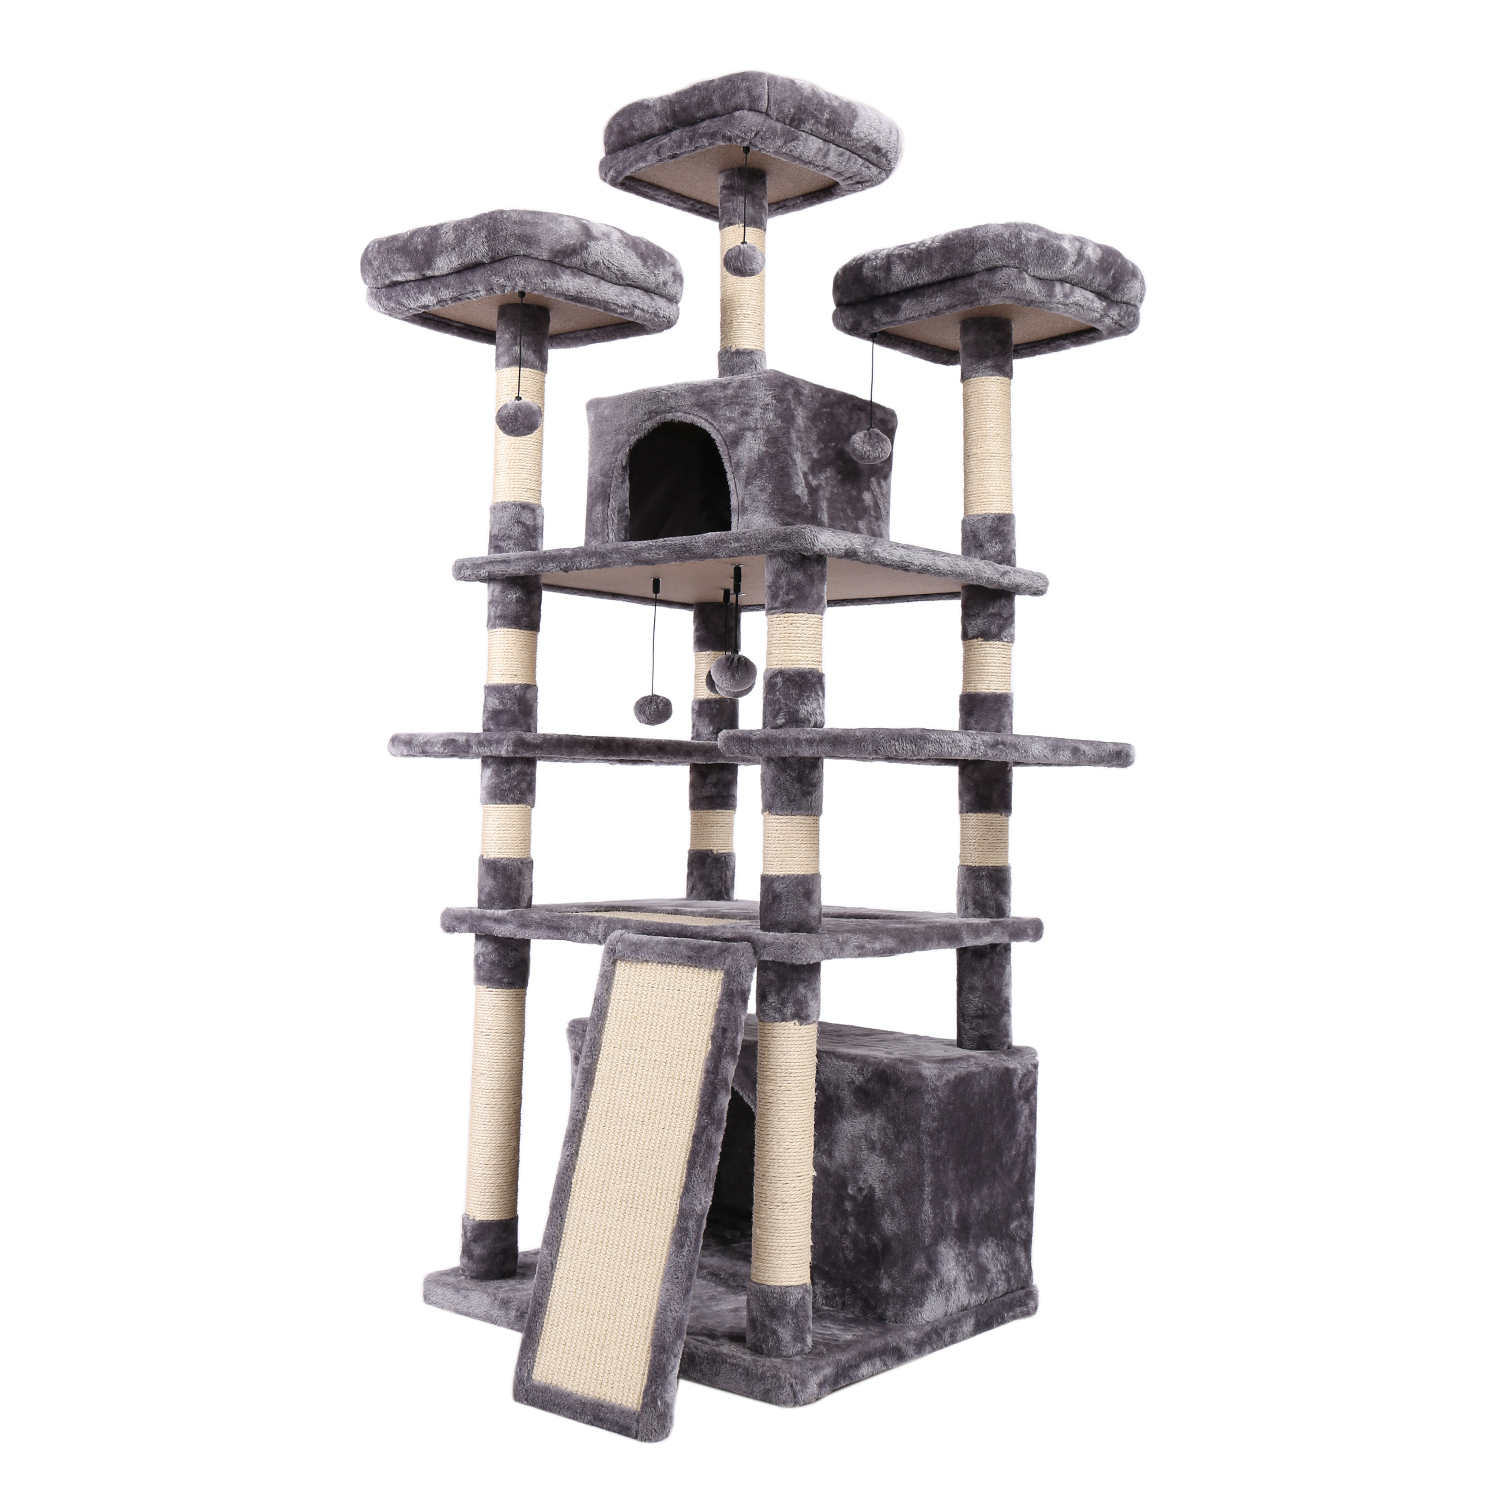 Domestic Delivery <font><b>Cat</b></font> Luxury Furniture <font><b>Pet</b></font> <font><b>Cat</b></font> <font><b>Tree</b></font> <font><b>Tower</b></font> Climbing Shelf <font><b>Cat</b></font> Furniture Scratching Post image